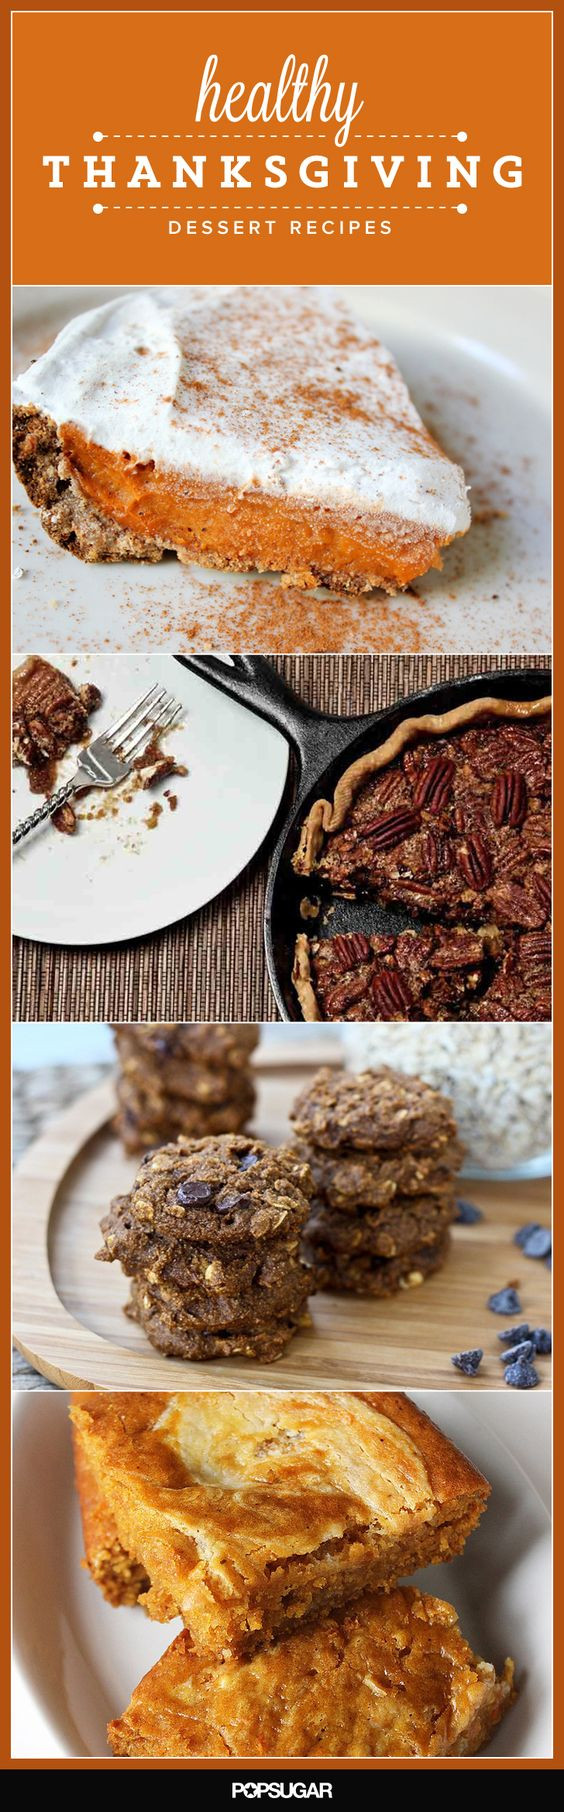 Healthy Thanksgiving Desserts  20 Healthy Desserts For Your Thanksgiving Feast